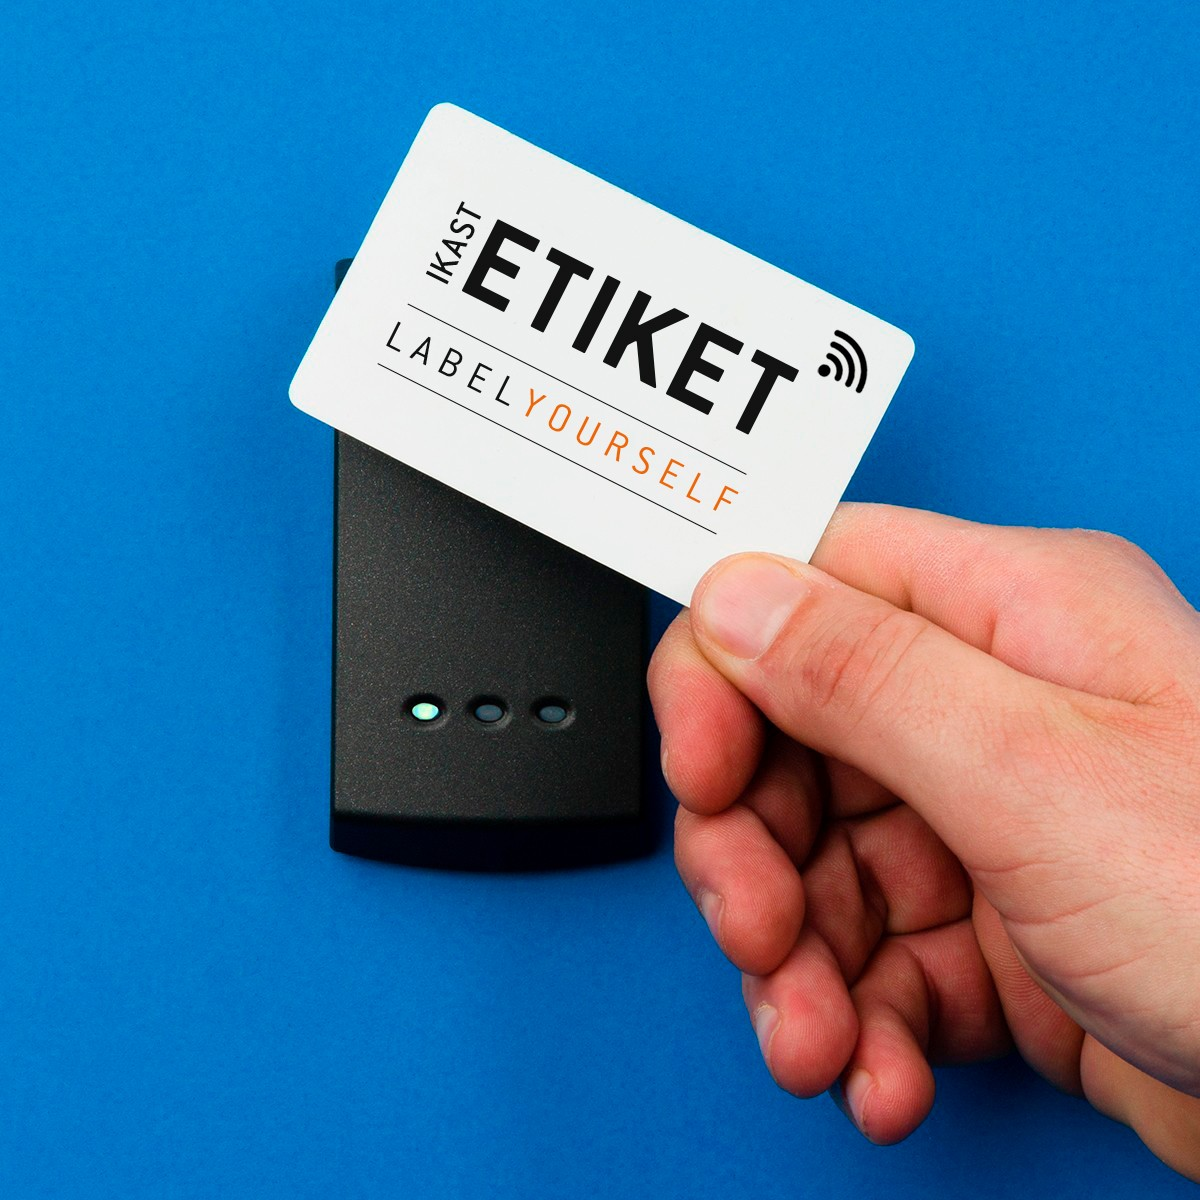 Cheap plastic cards with RFID or NFC tags - buy them here